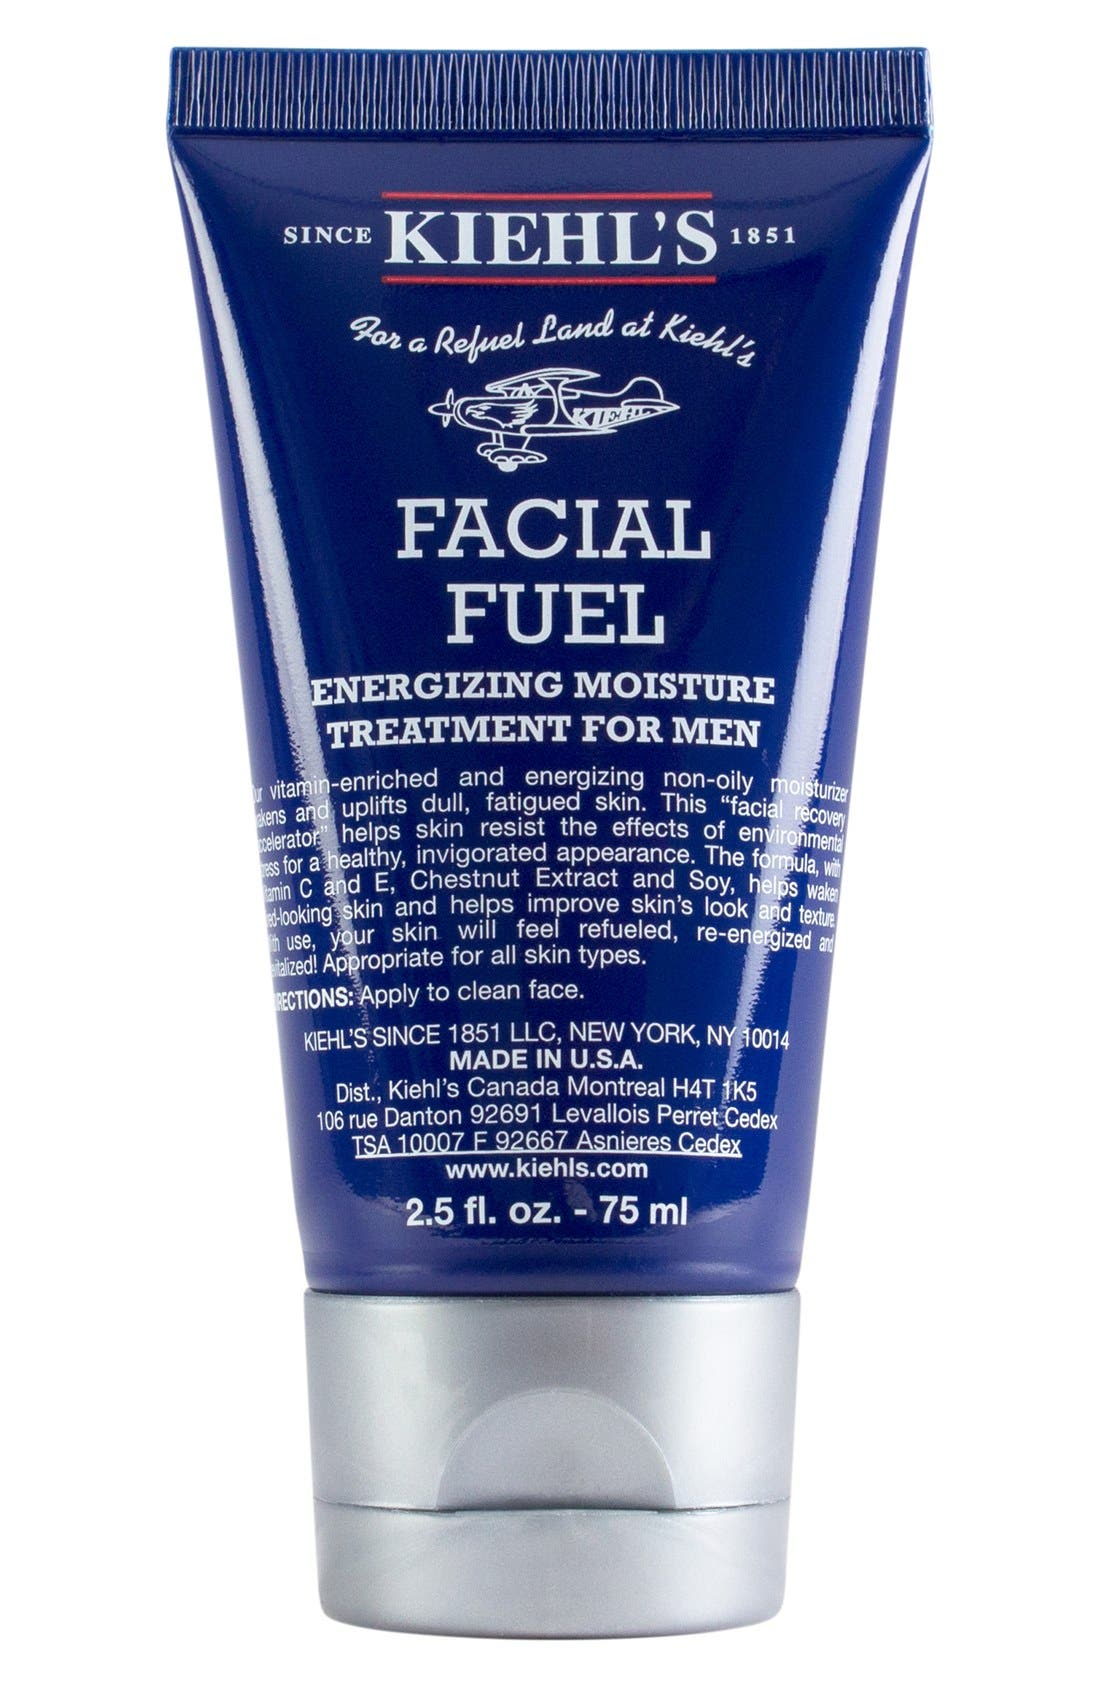 Kiehl's Since 1851 'Facial Fuel' Energizing Moisture Treatment for Men